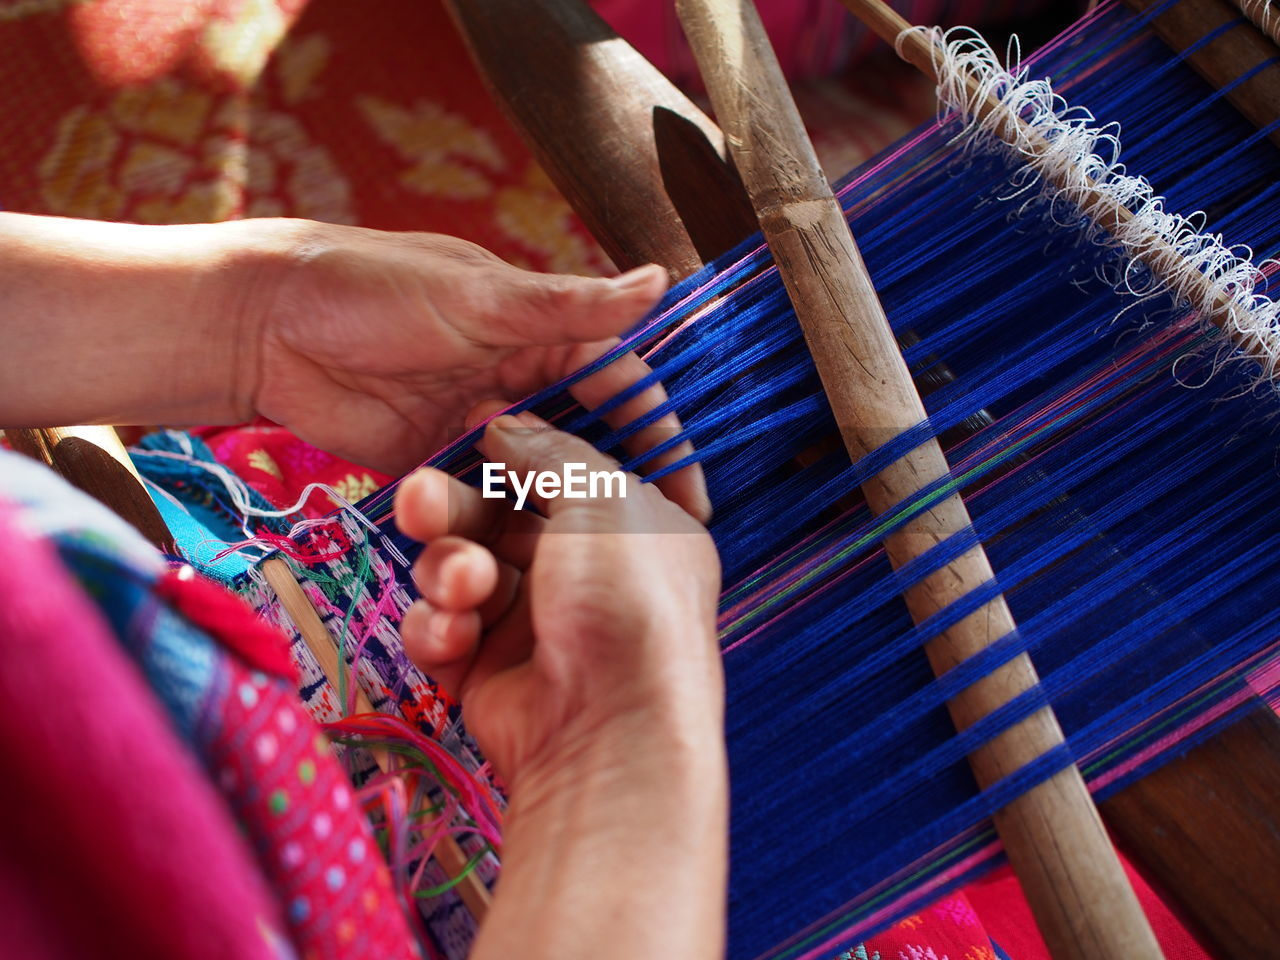 art and craft, textile, craft, thread, skill, weaving, working, loom, industry, indoors, real people, human hand, wool, hand, one person, selective focus, creativity, human body part, occupation, holding